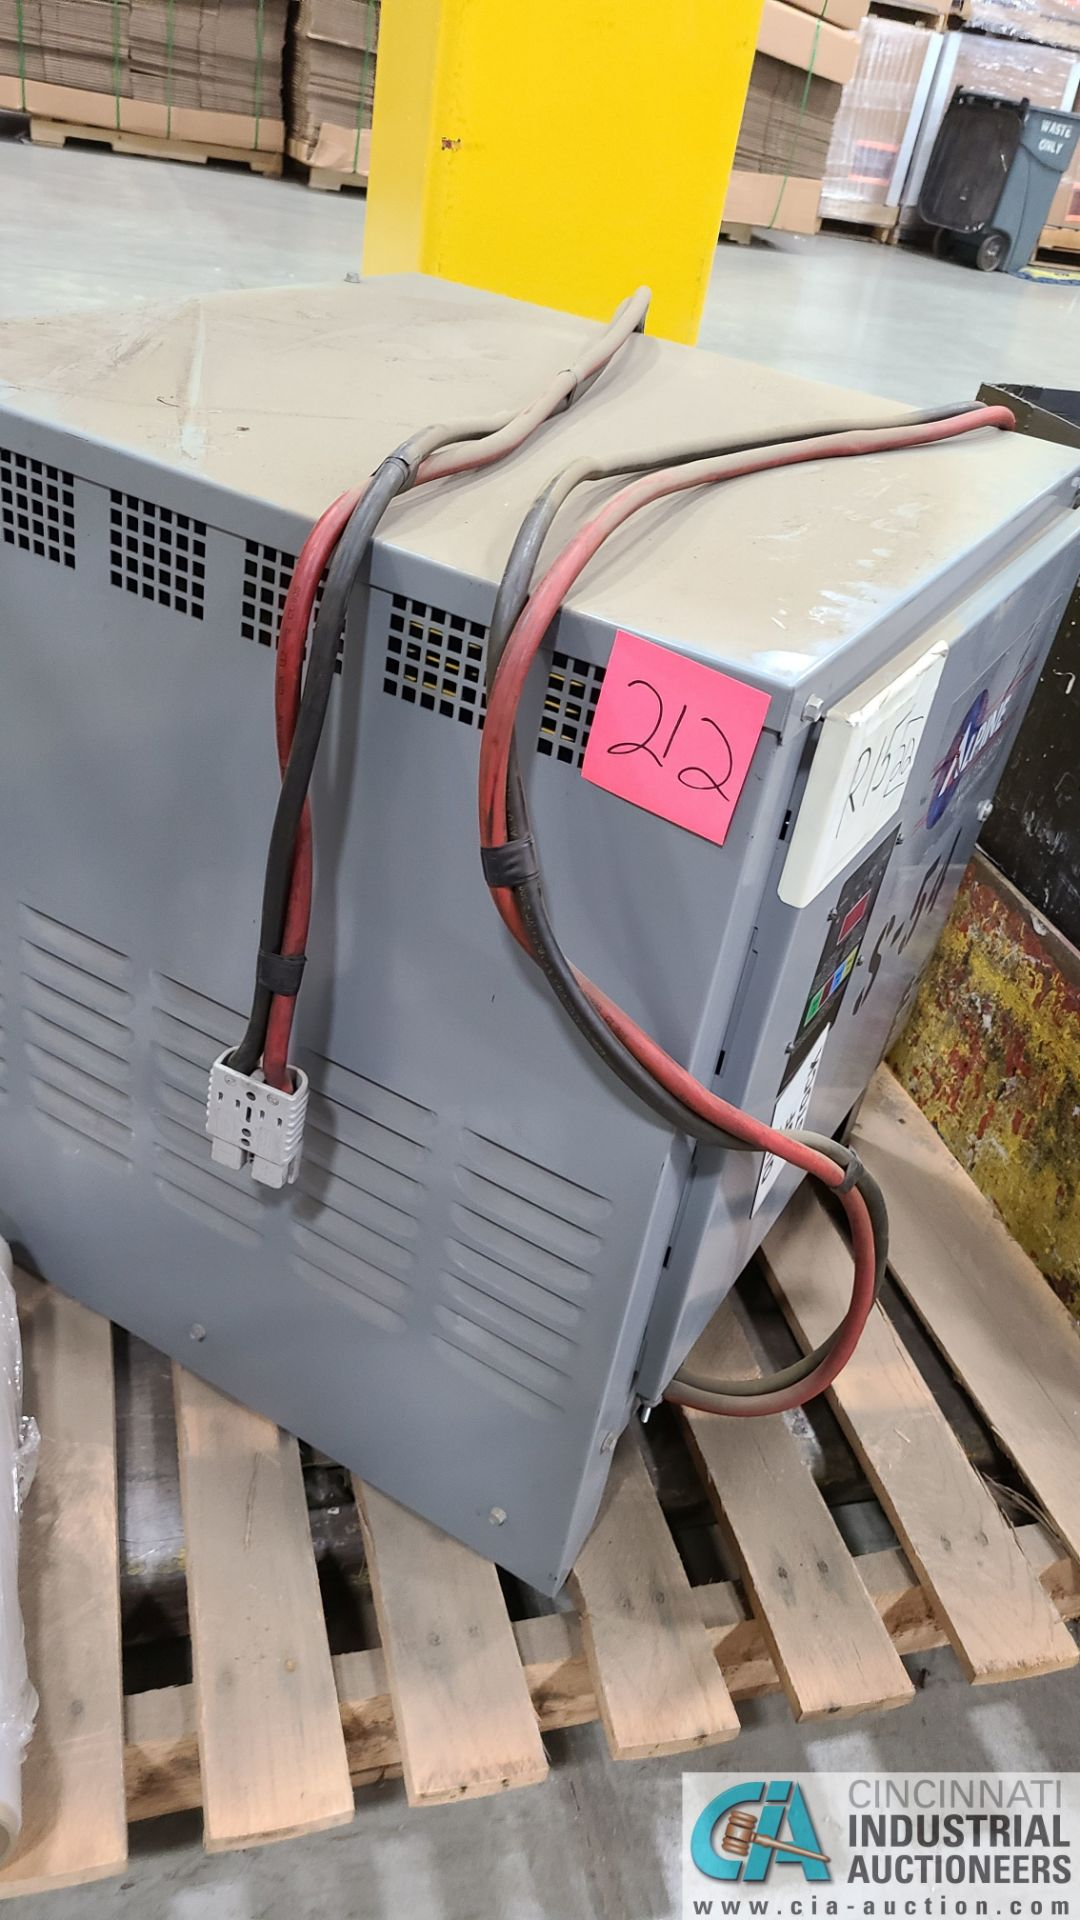 24-VOLT ALPINE MODEL XPT12-600B PF20 BATTERY CHARGER; S/N AT295700011 (2570 ORCHARD GATEWAY BLVD., - Image 2 of 3